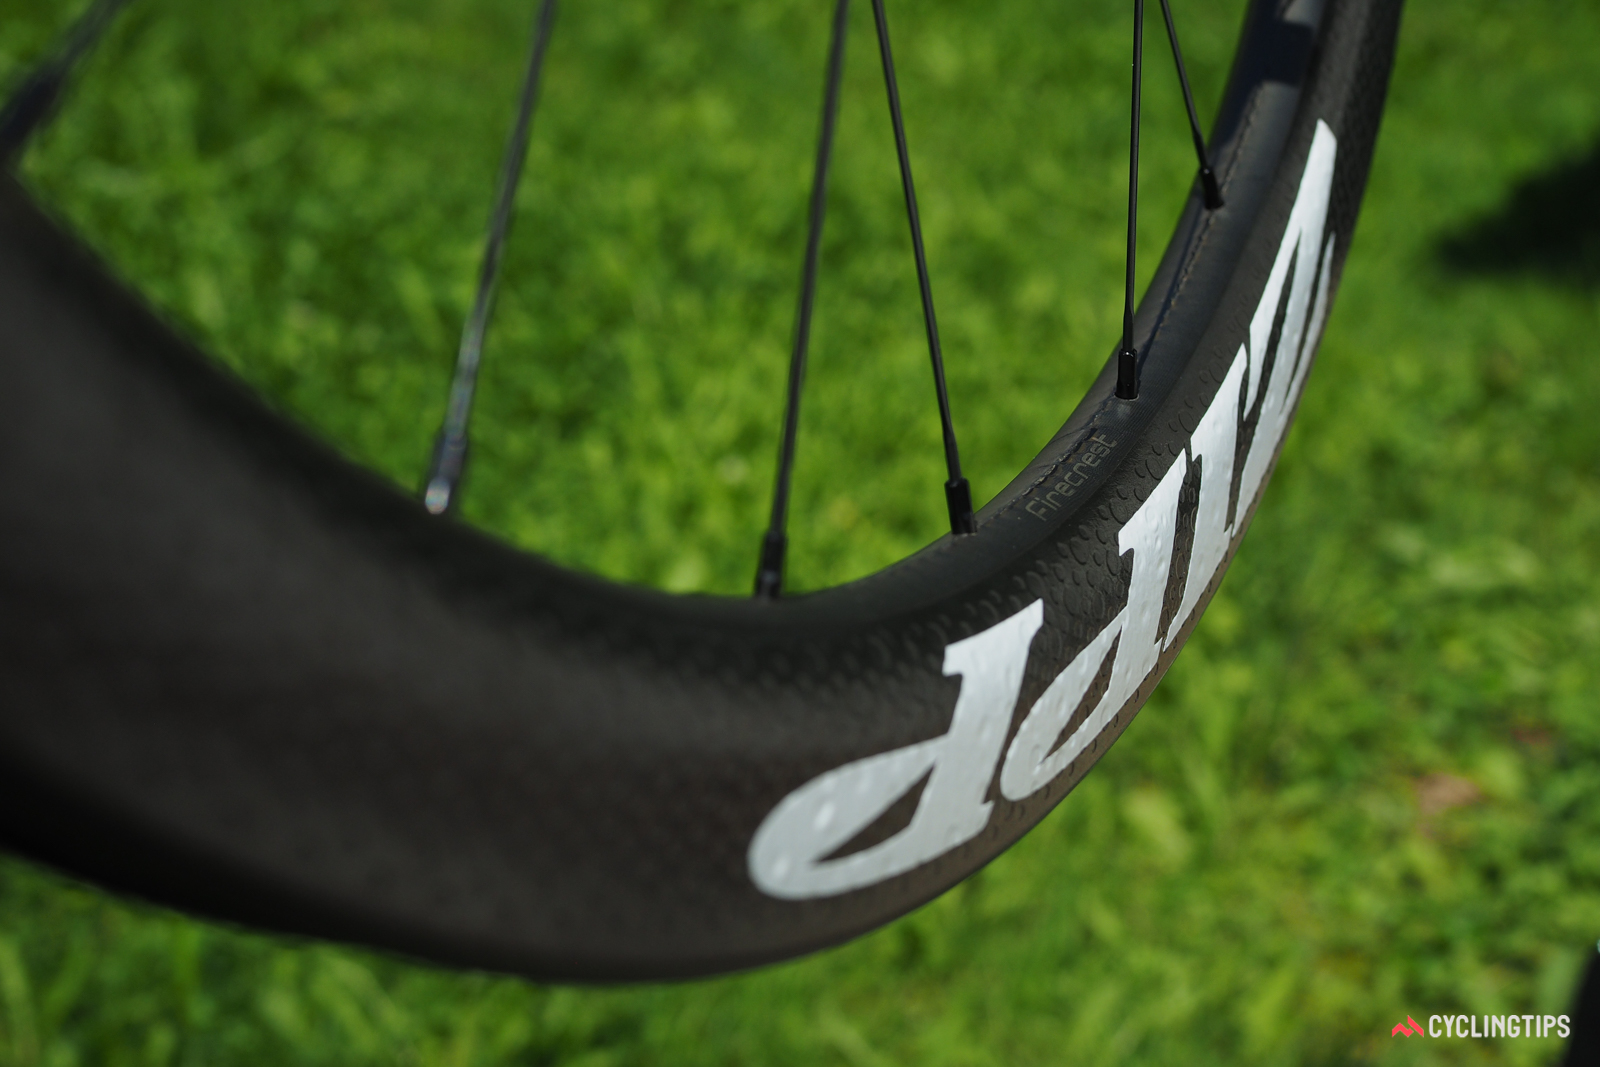 Disc-specific rims offer more flexibility in terms of shaping than ones designed for rim brakes. In the case of the new Zipp 303 Firecrest carbon clincher, the fatter outer edge makes for a smoother transition to the tire. Note how the dimples also fill in the space where a brake track would normally go, too.